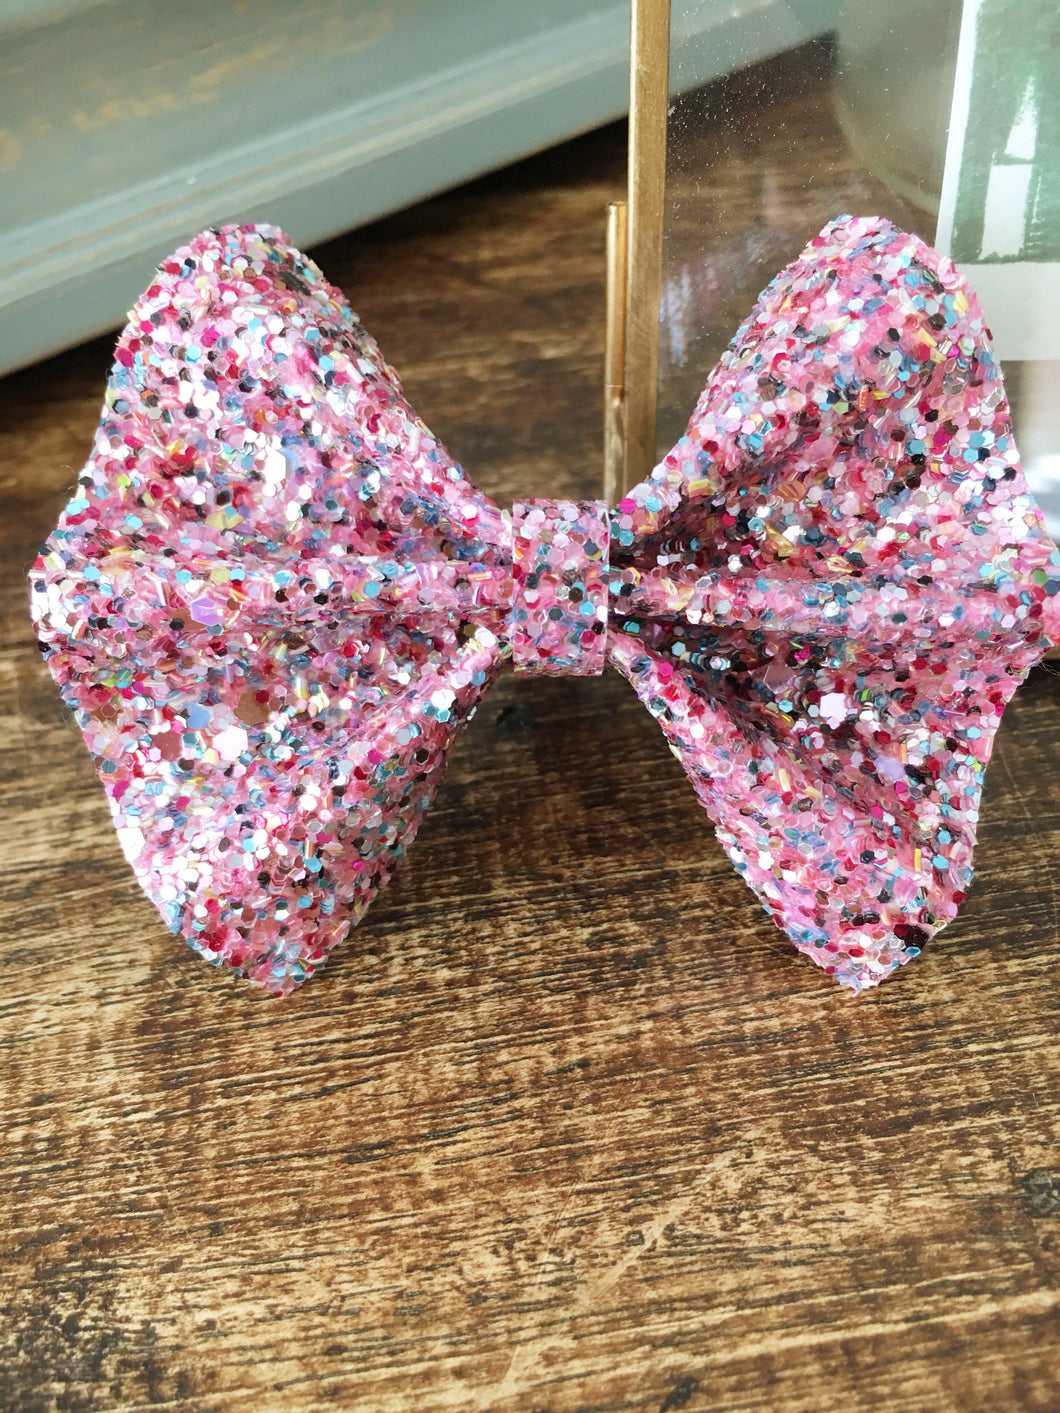 Dixie Bow *Small* - Multi colored glitter bow, pink multicolored glitter headband, baby shower gift, baby gift shower, baby accessories, toddler accessories